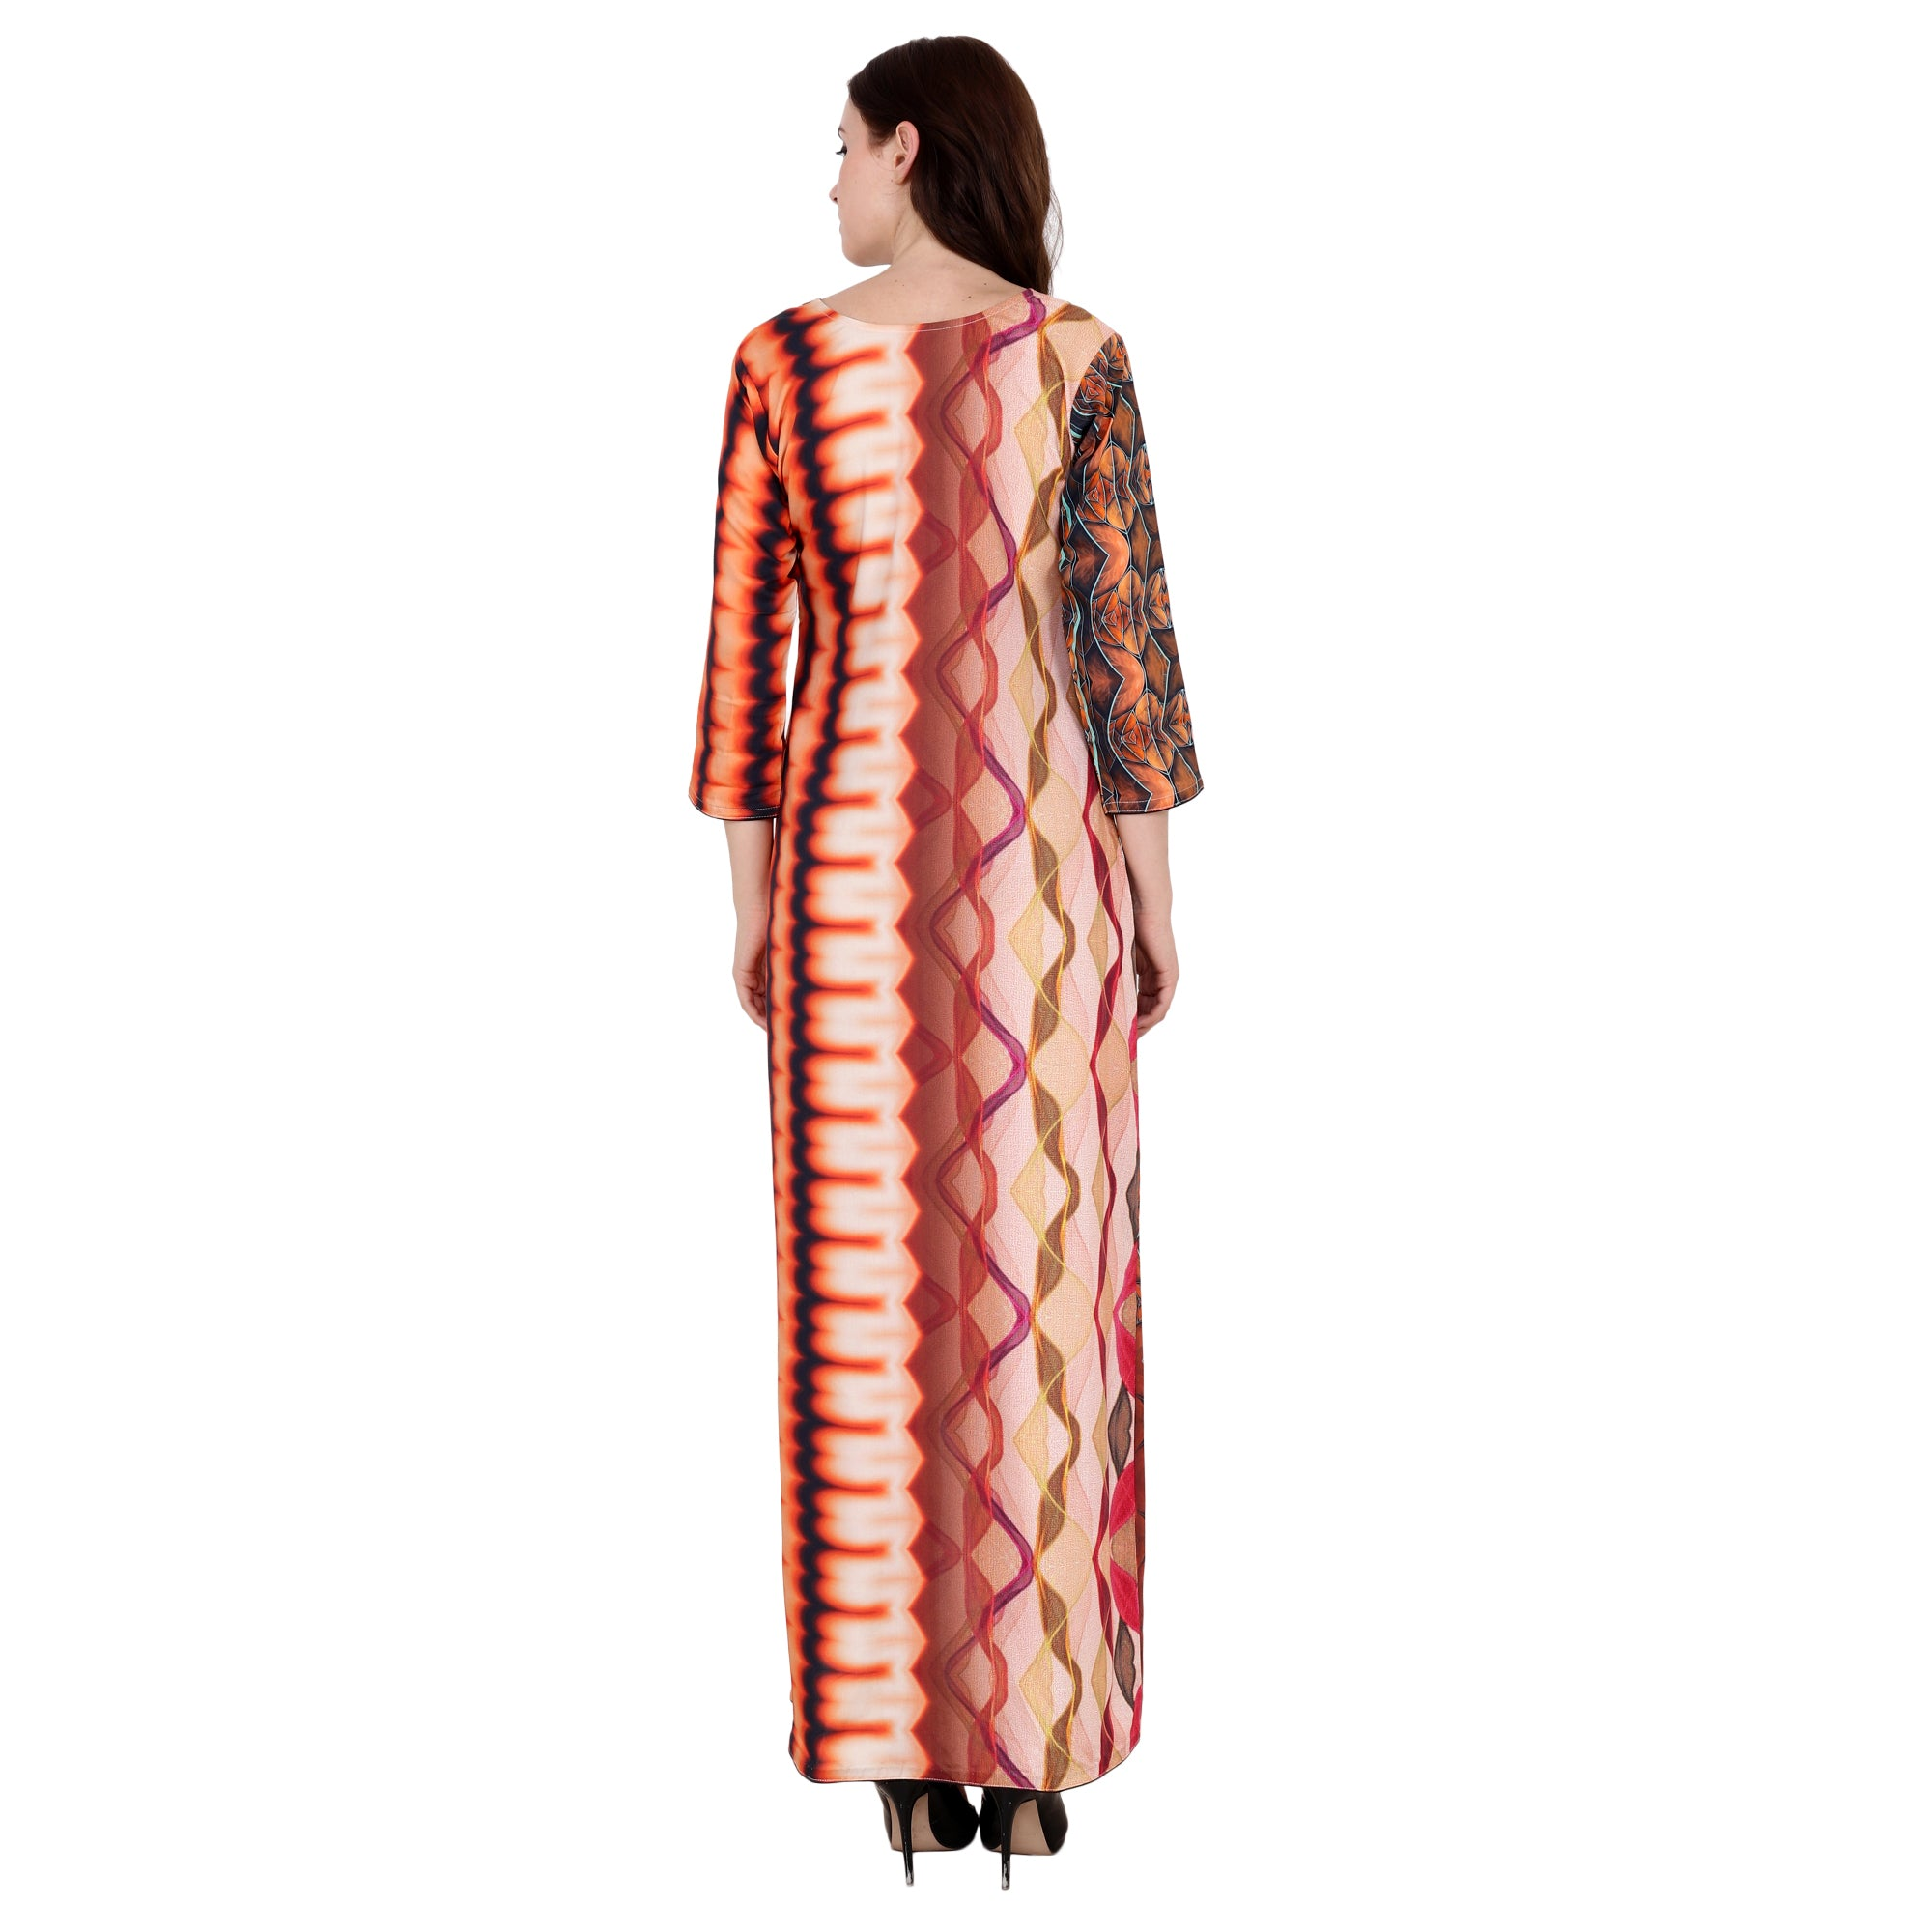 10xl, 2xl, 3xl, 4xl, 5xl, 6xl, 7xl, 8xl, 9xl, front wave cut, geometric print, modal, orange, plus size dress, shaded black